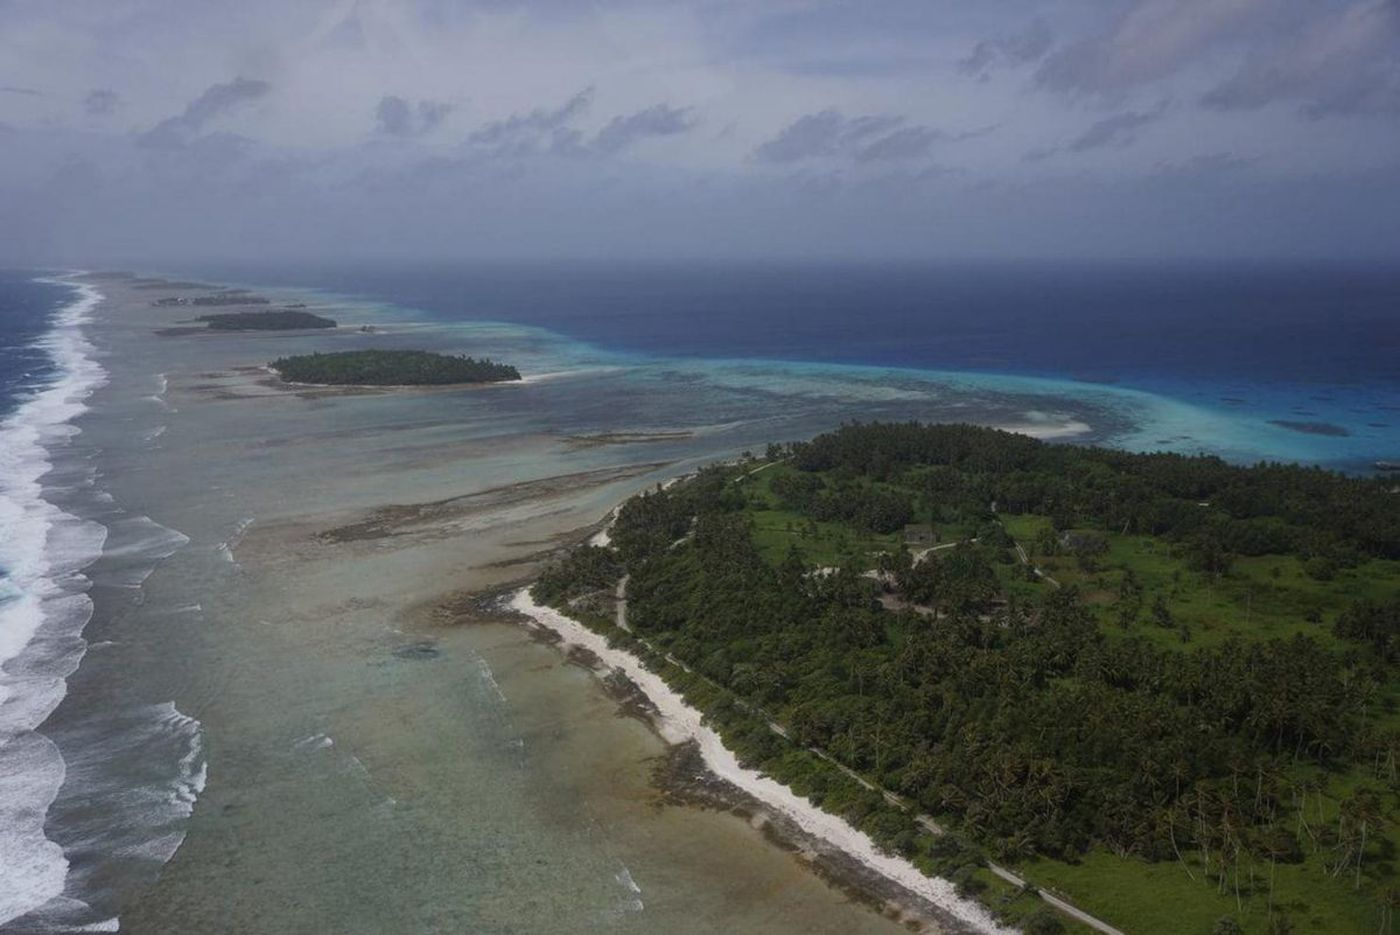 Climate change could make thousands of tropical islands 'uninhabitable' in coming decades, new study says